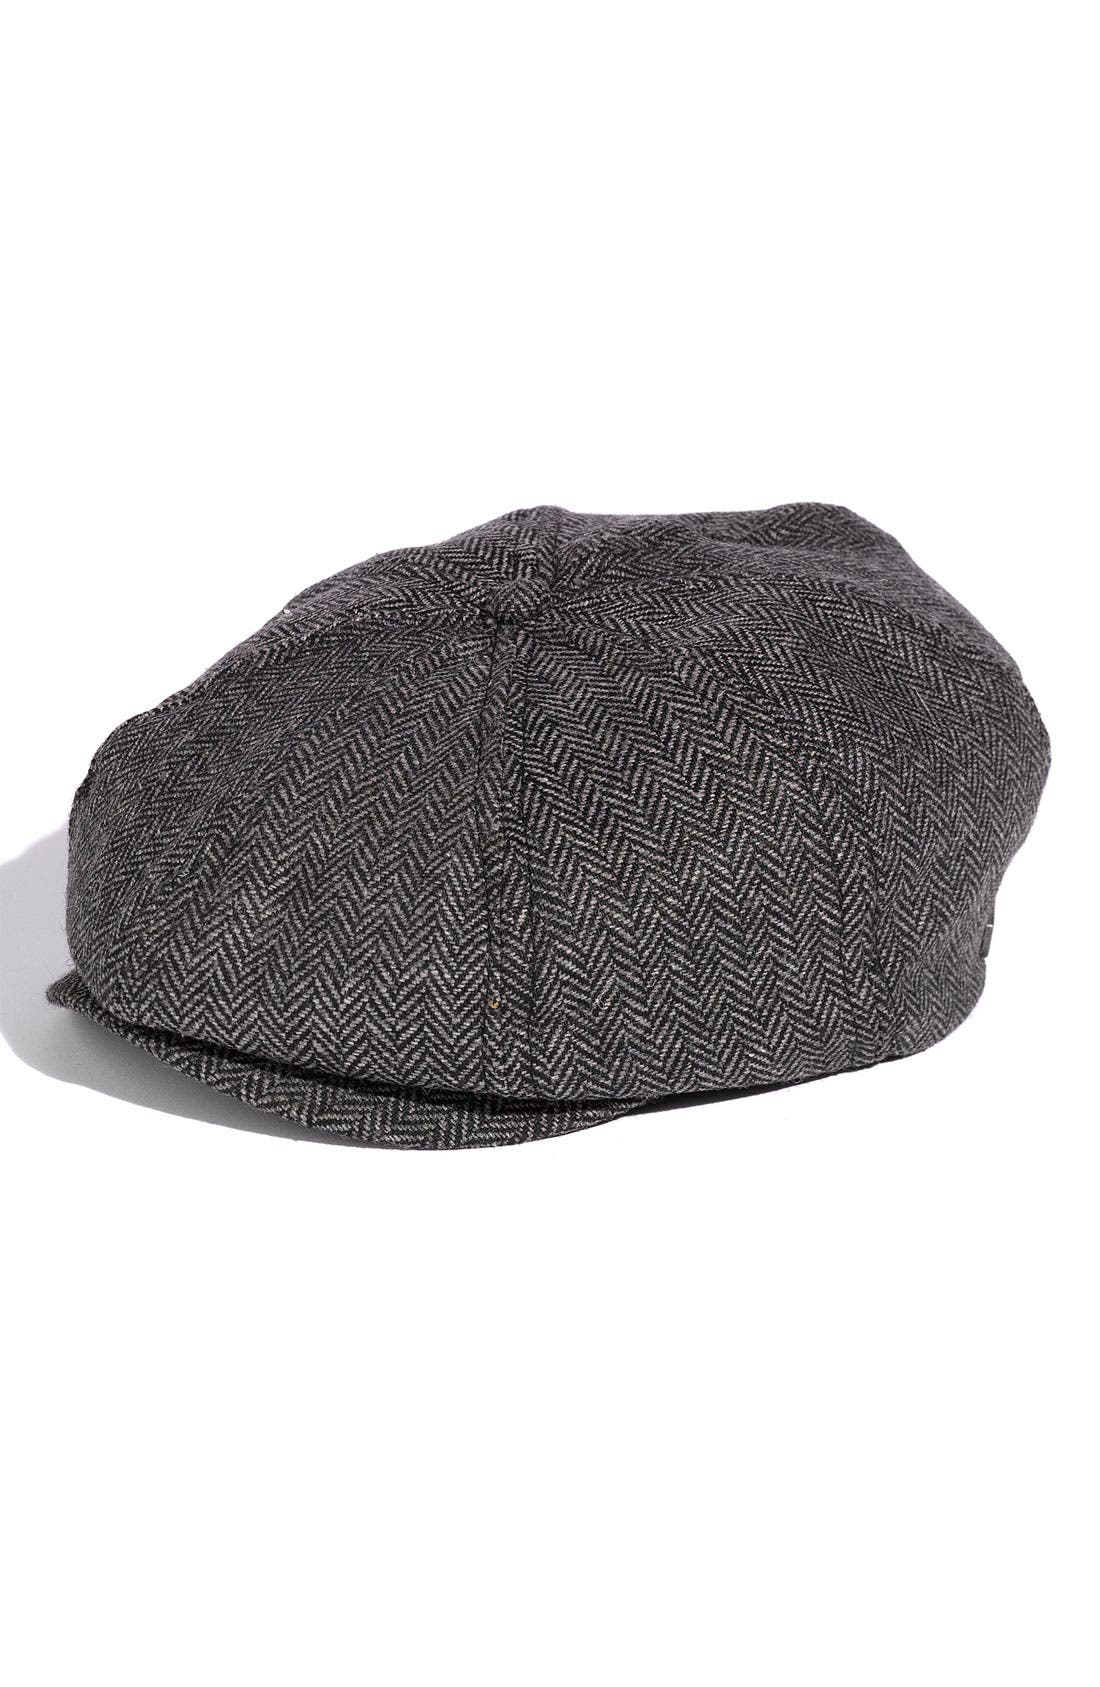 Alternate Image 1 Selected - Brixton 'Brood' Driving Cap